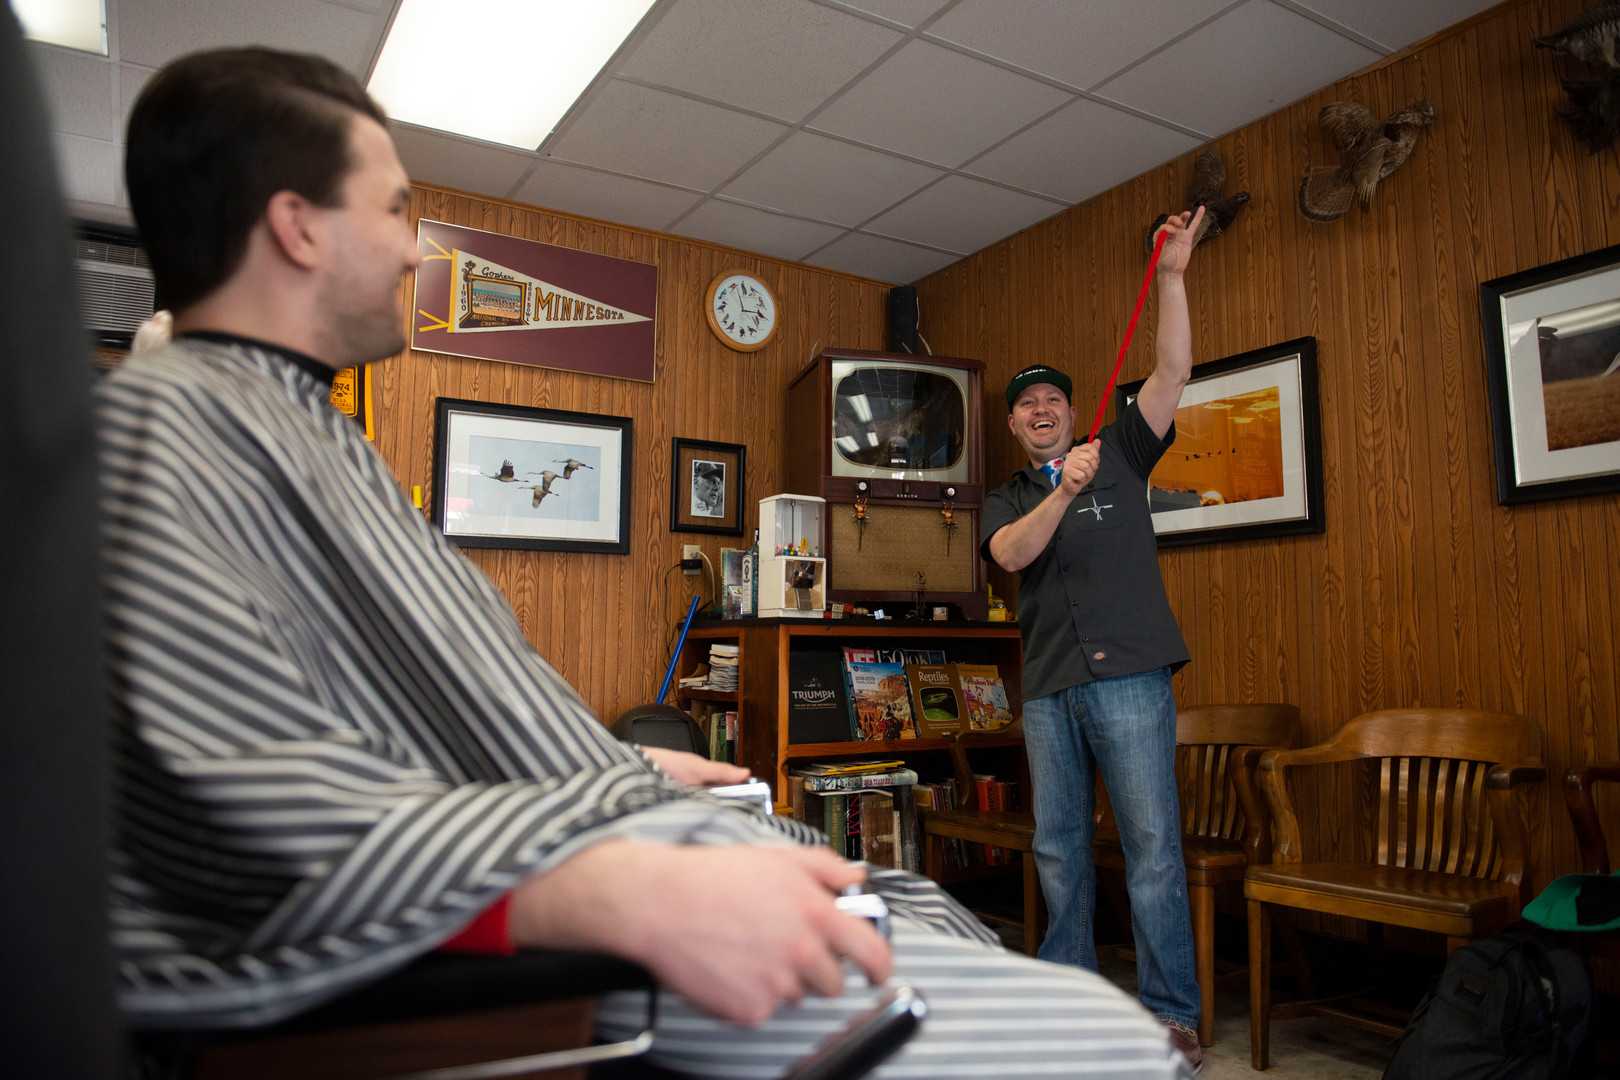 Dan Griffin performs a magic trick for customers at Craig's Como Barbershop on Friday, April 26, 2019.